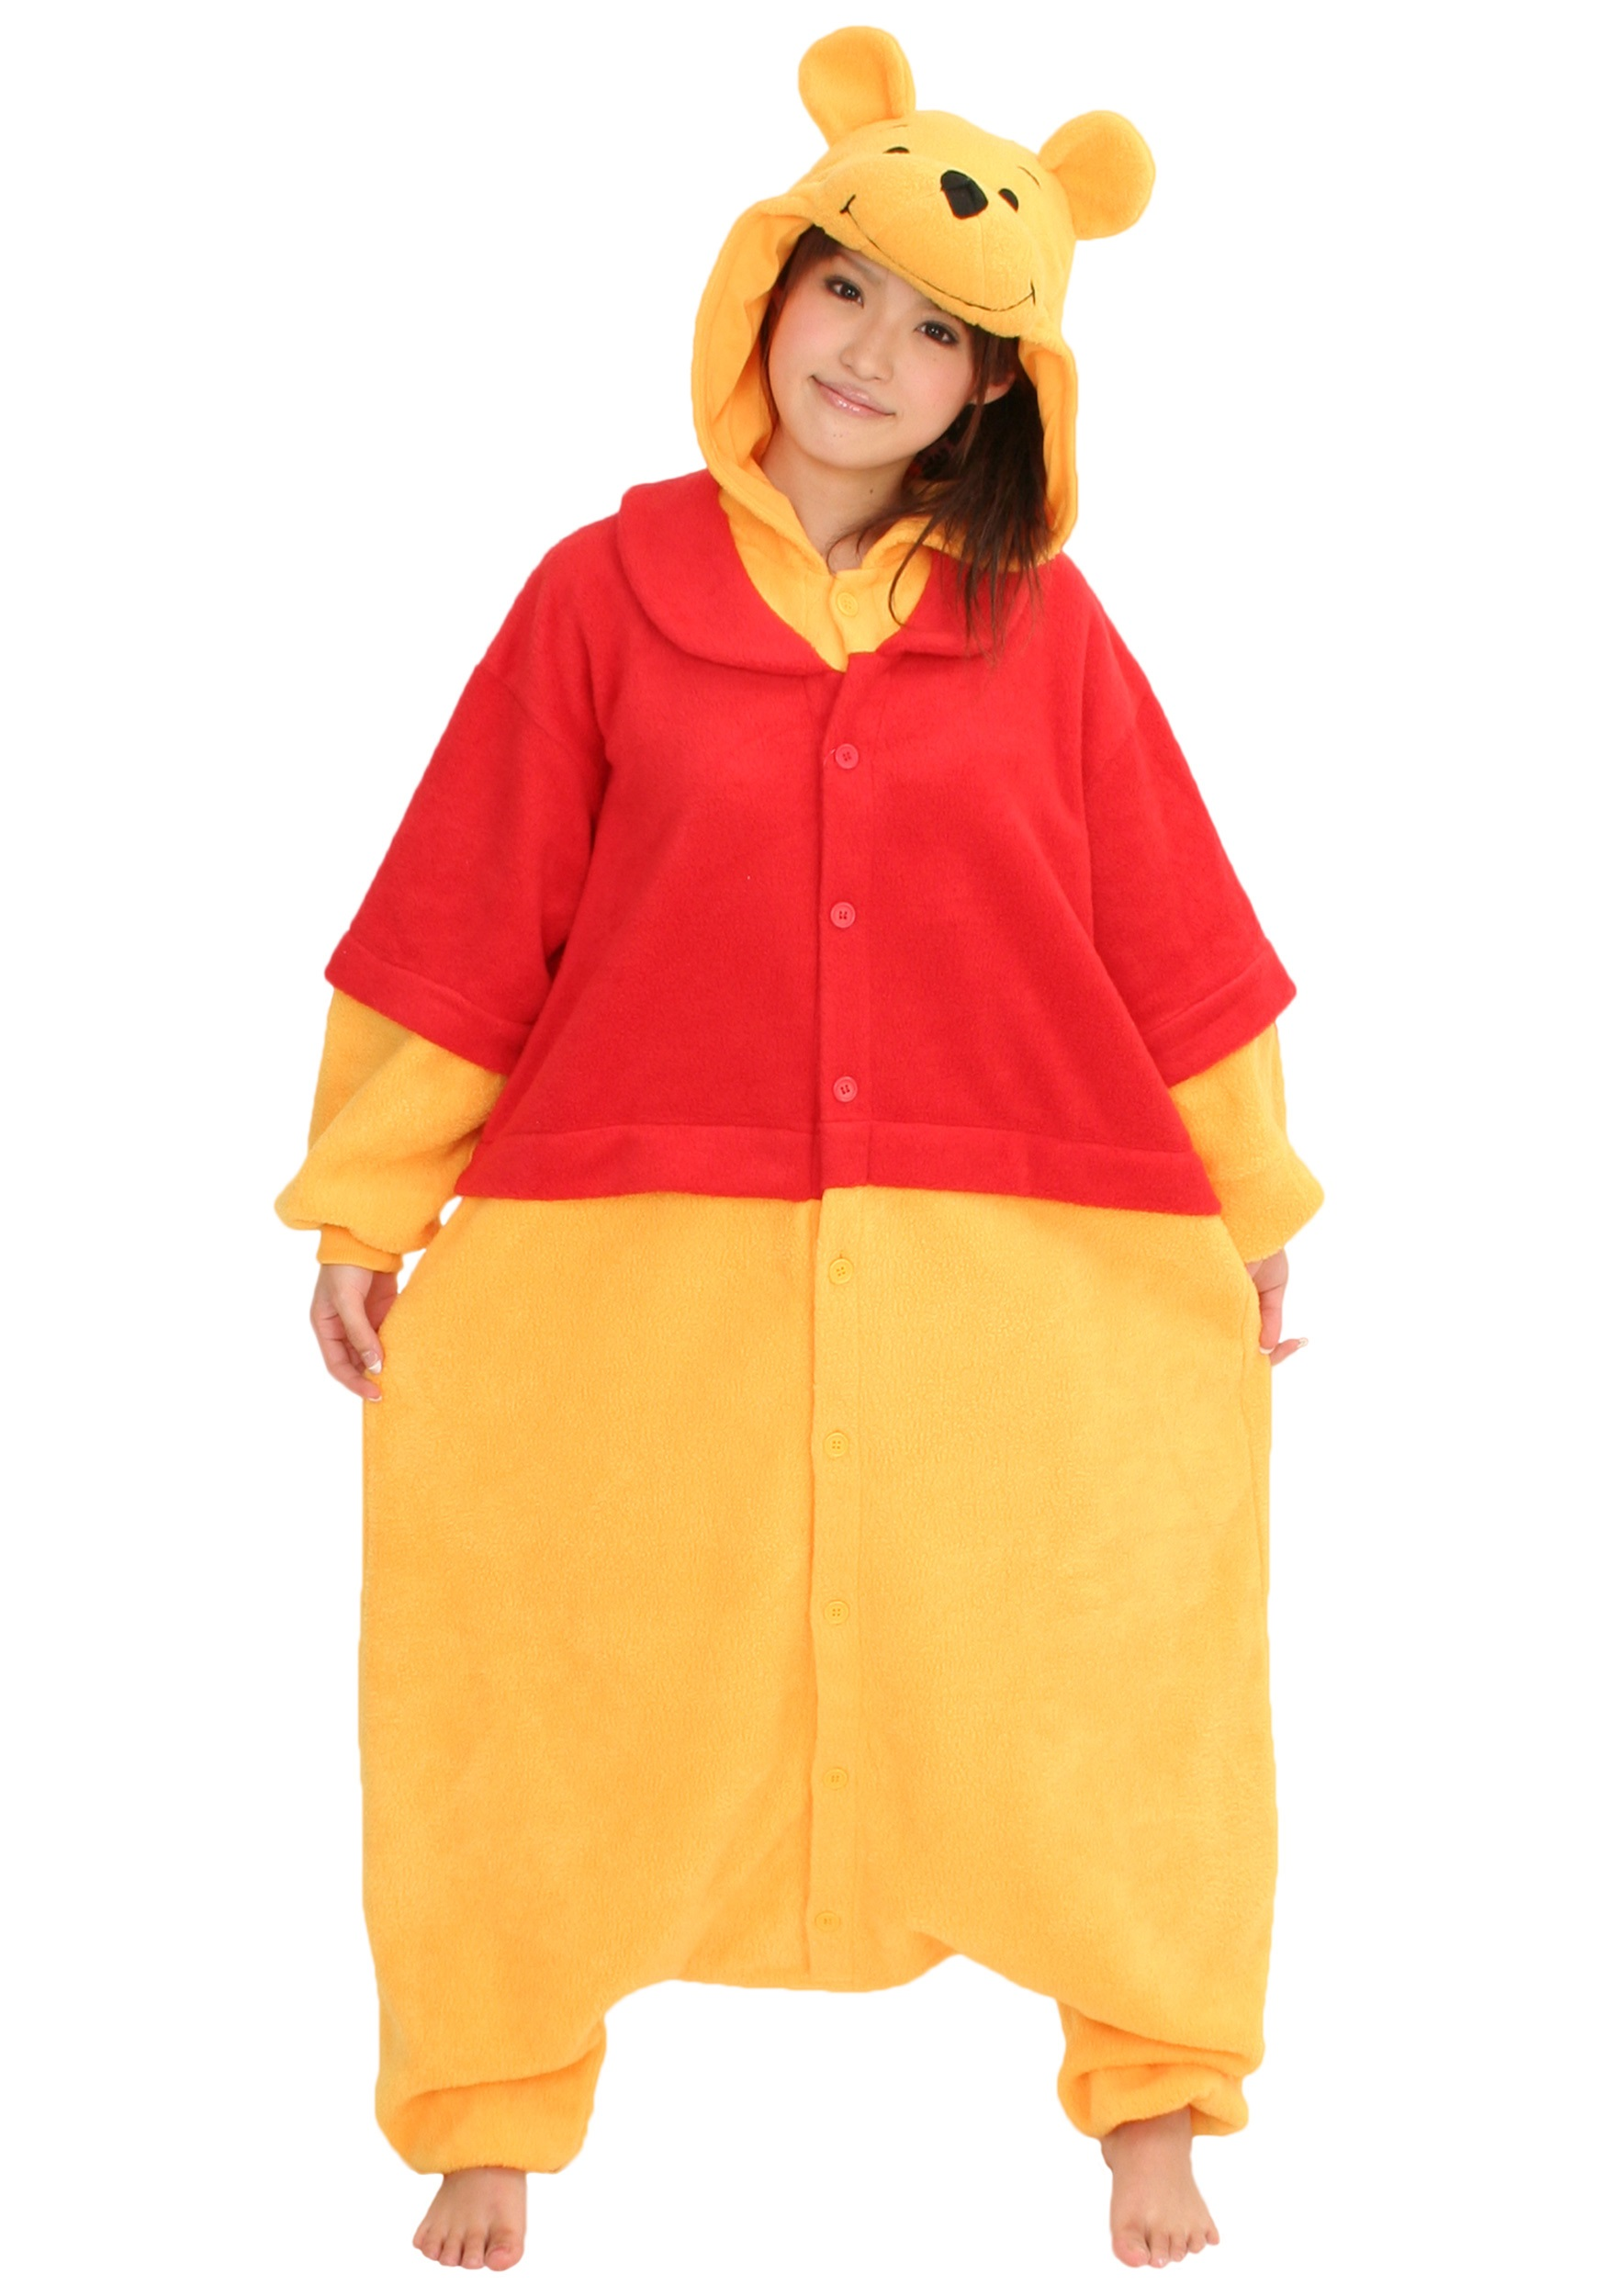 d703ddfe8a82 Winnie the Pooh Pajama Costume - Disney Character Pajama Costume Ideas